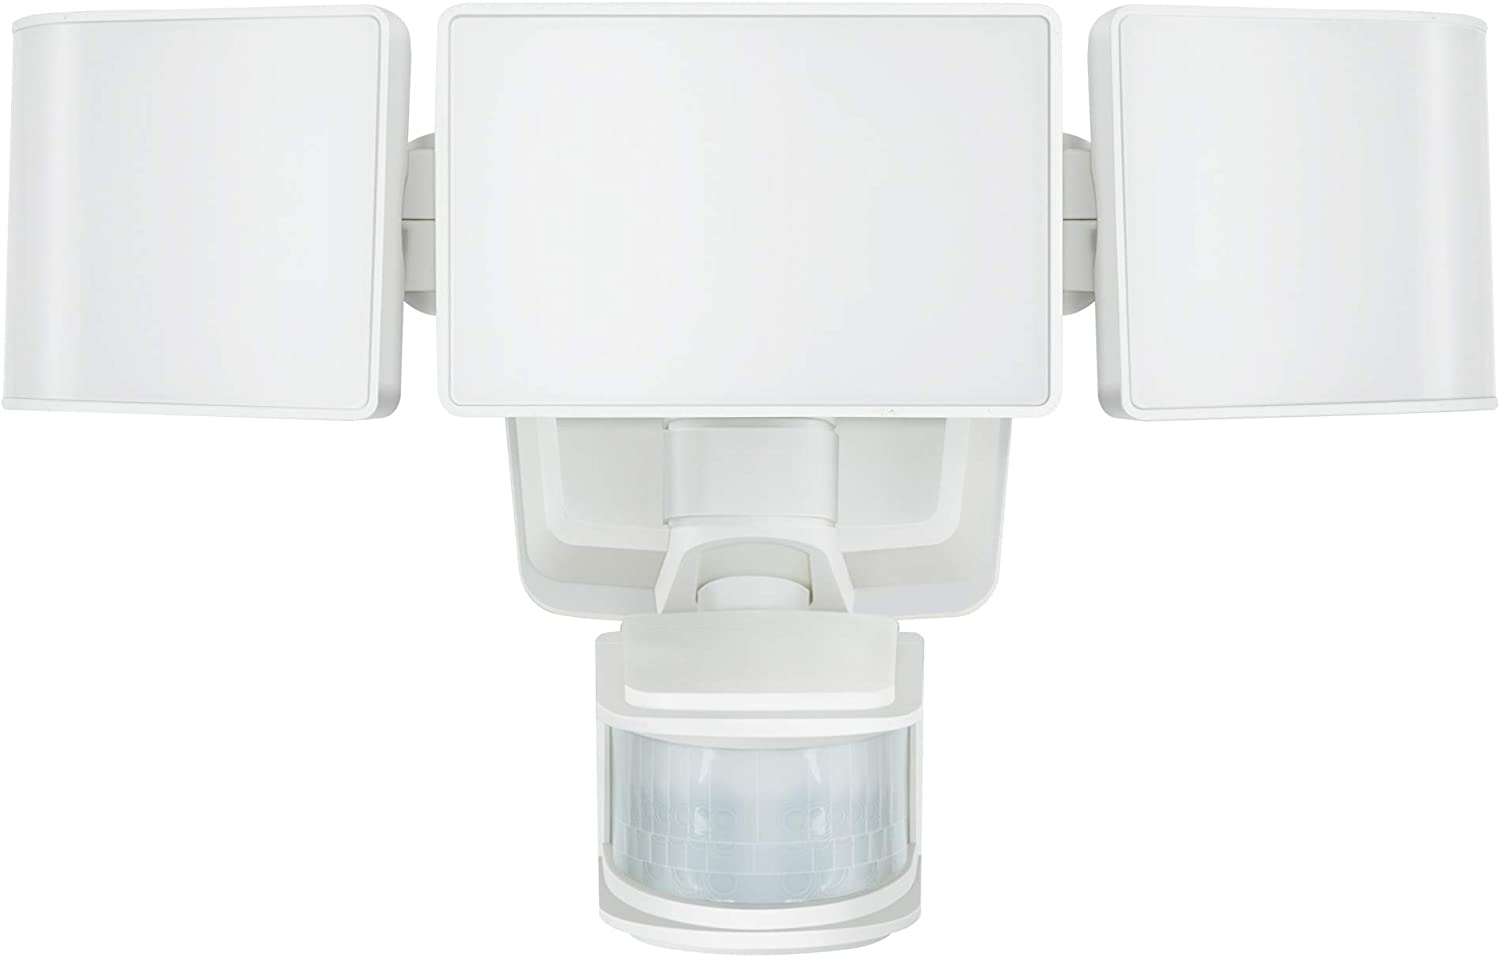 SOLLA 55W LED Security Lights Supe Outdoor Sensor Seattle Mall 5500LM Motion Cheap